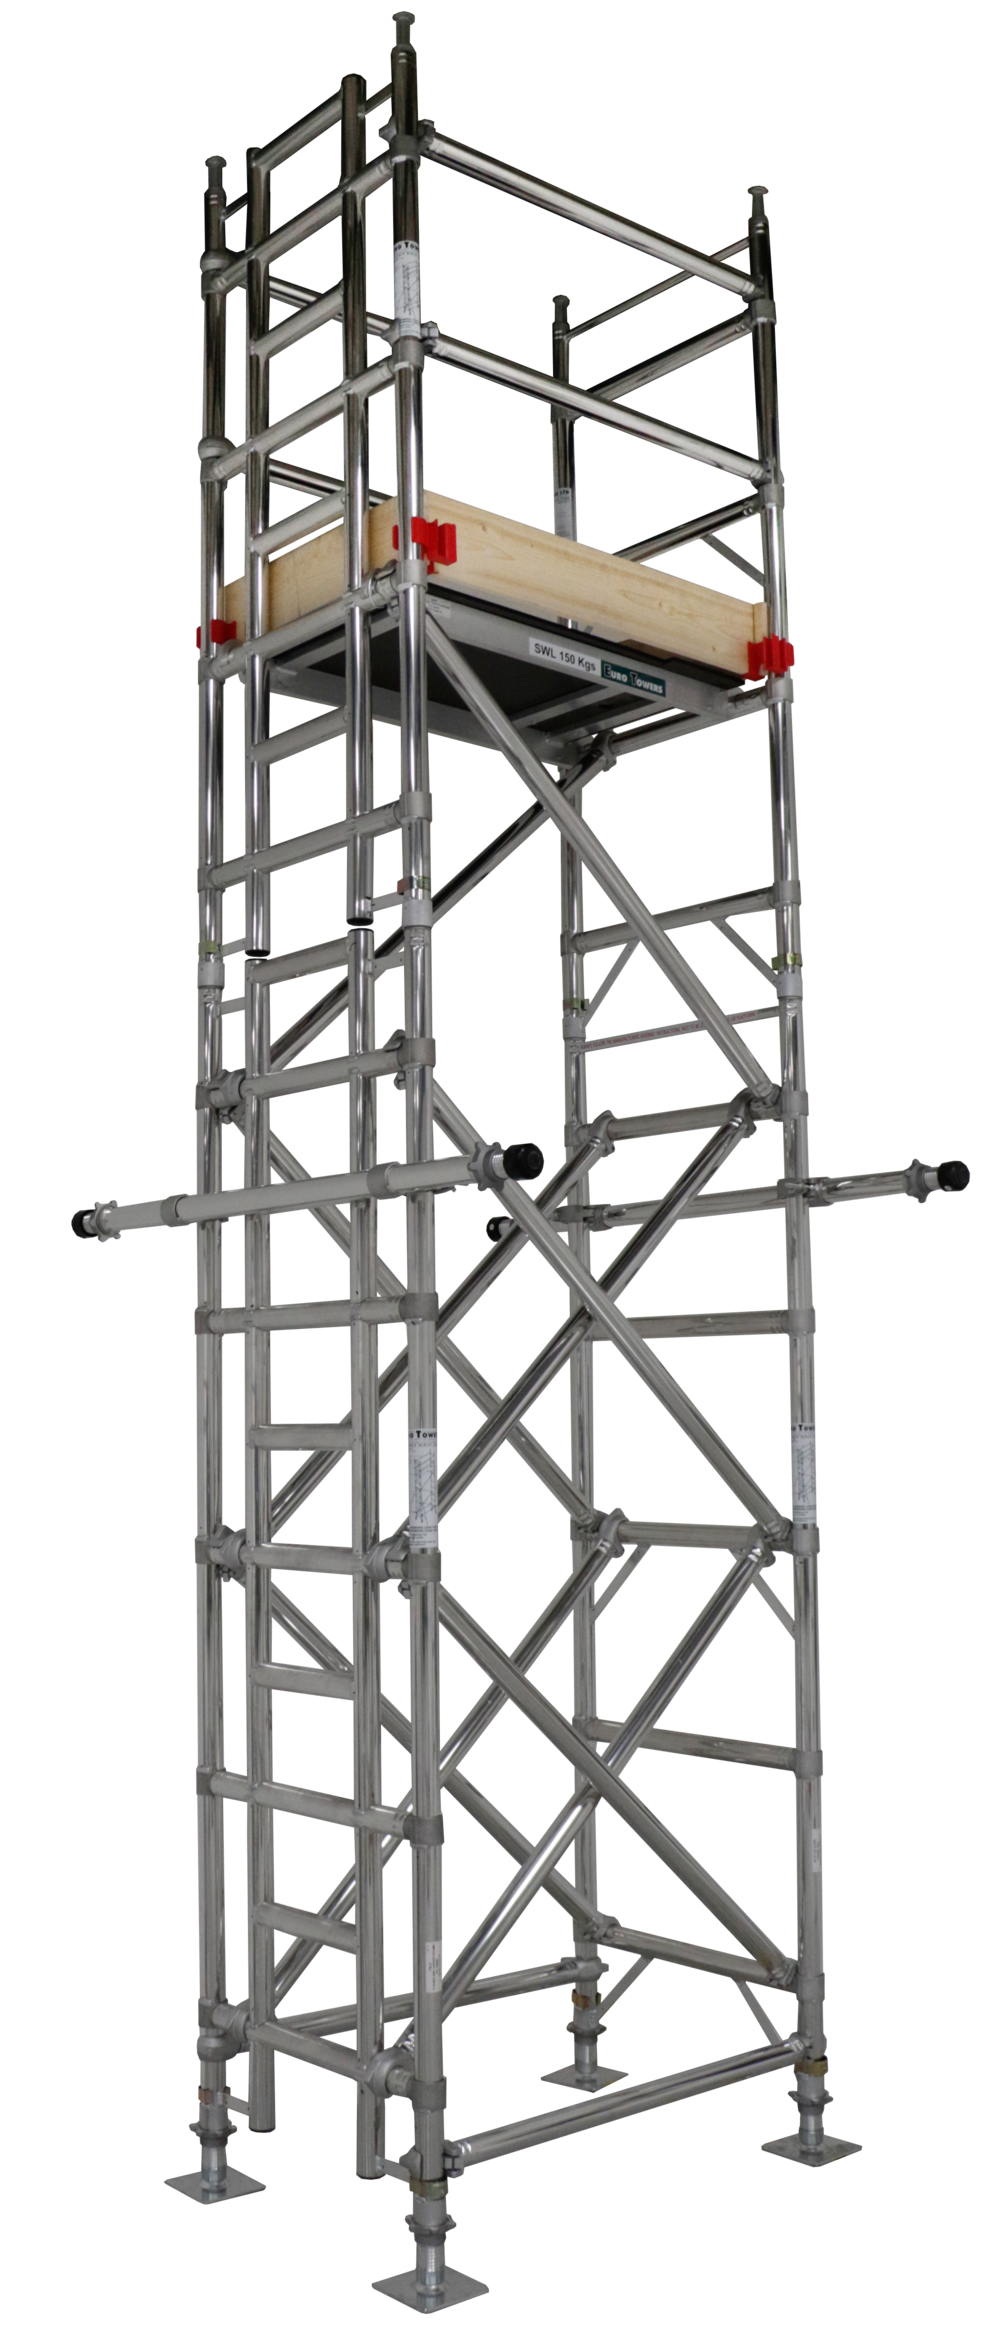 Lift shaft tower, assembly guide, lift shaft access, working at height, aluminium access, aluminium tower